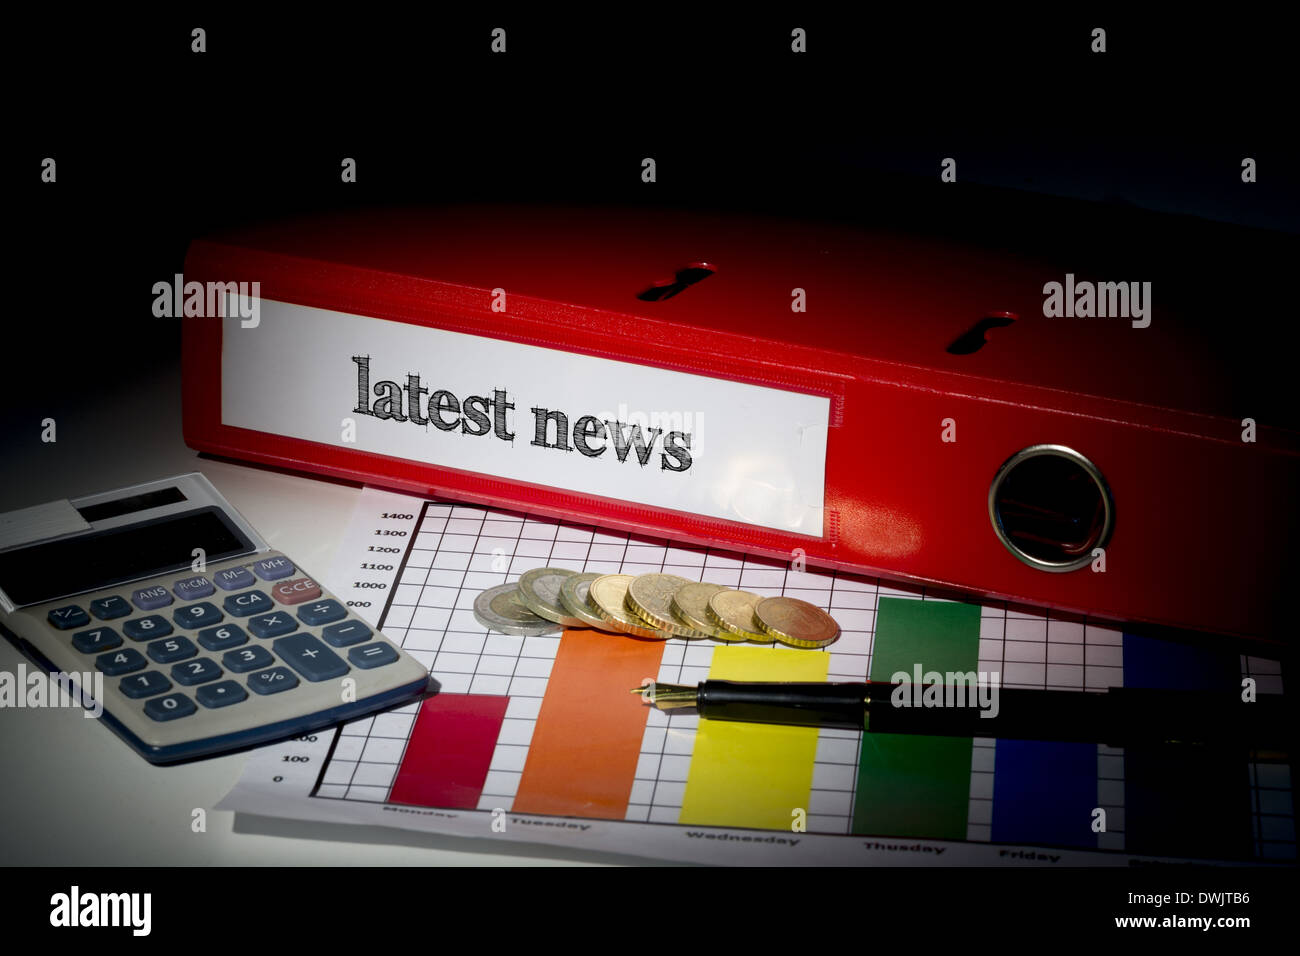 Latest news on red business binder - Stock Image